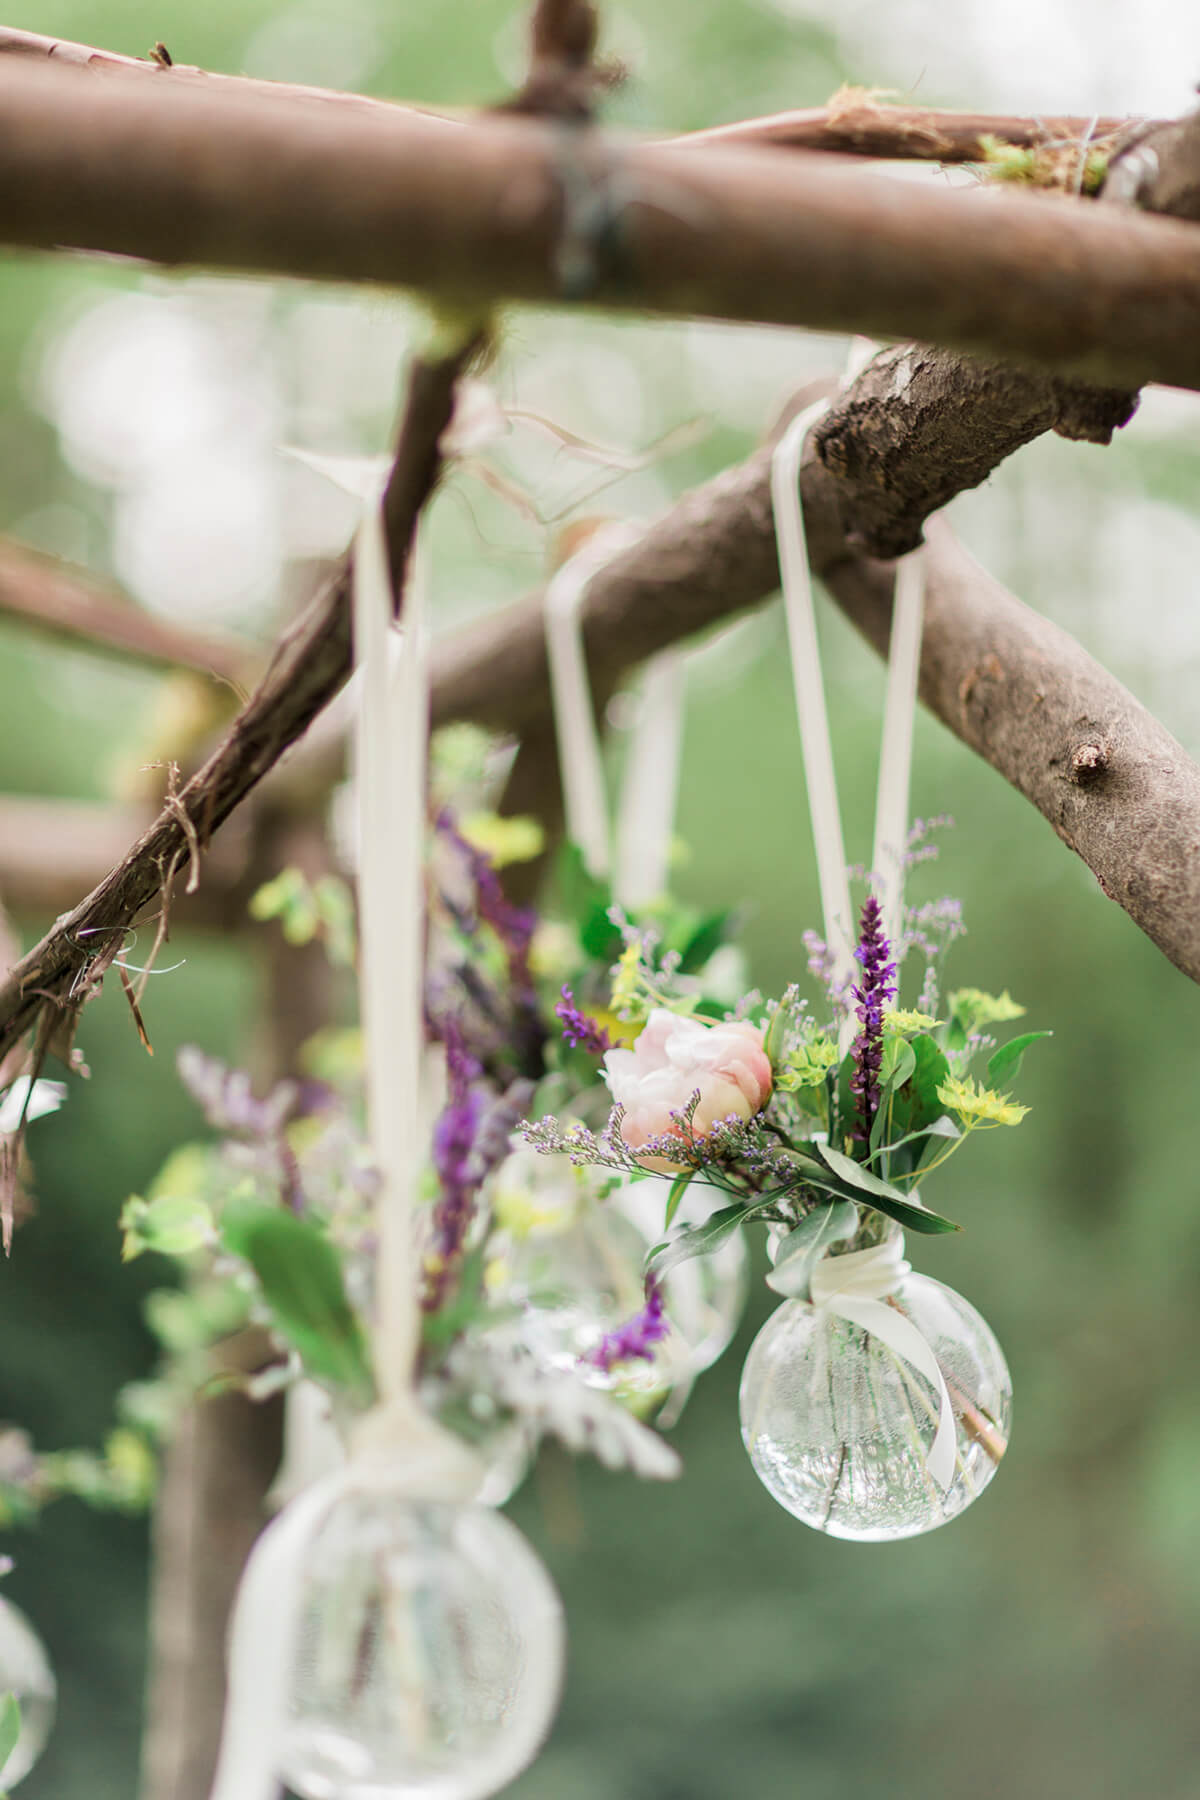 Herbal Baubles Dress Up Bare Branches